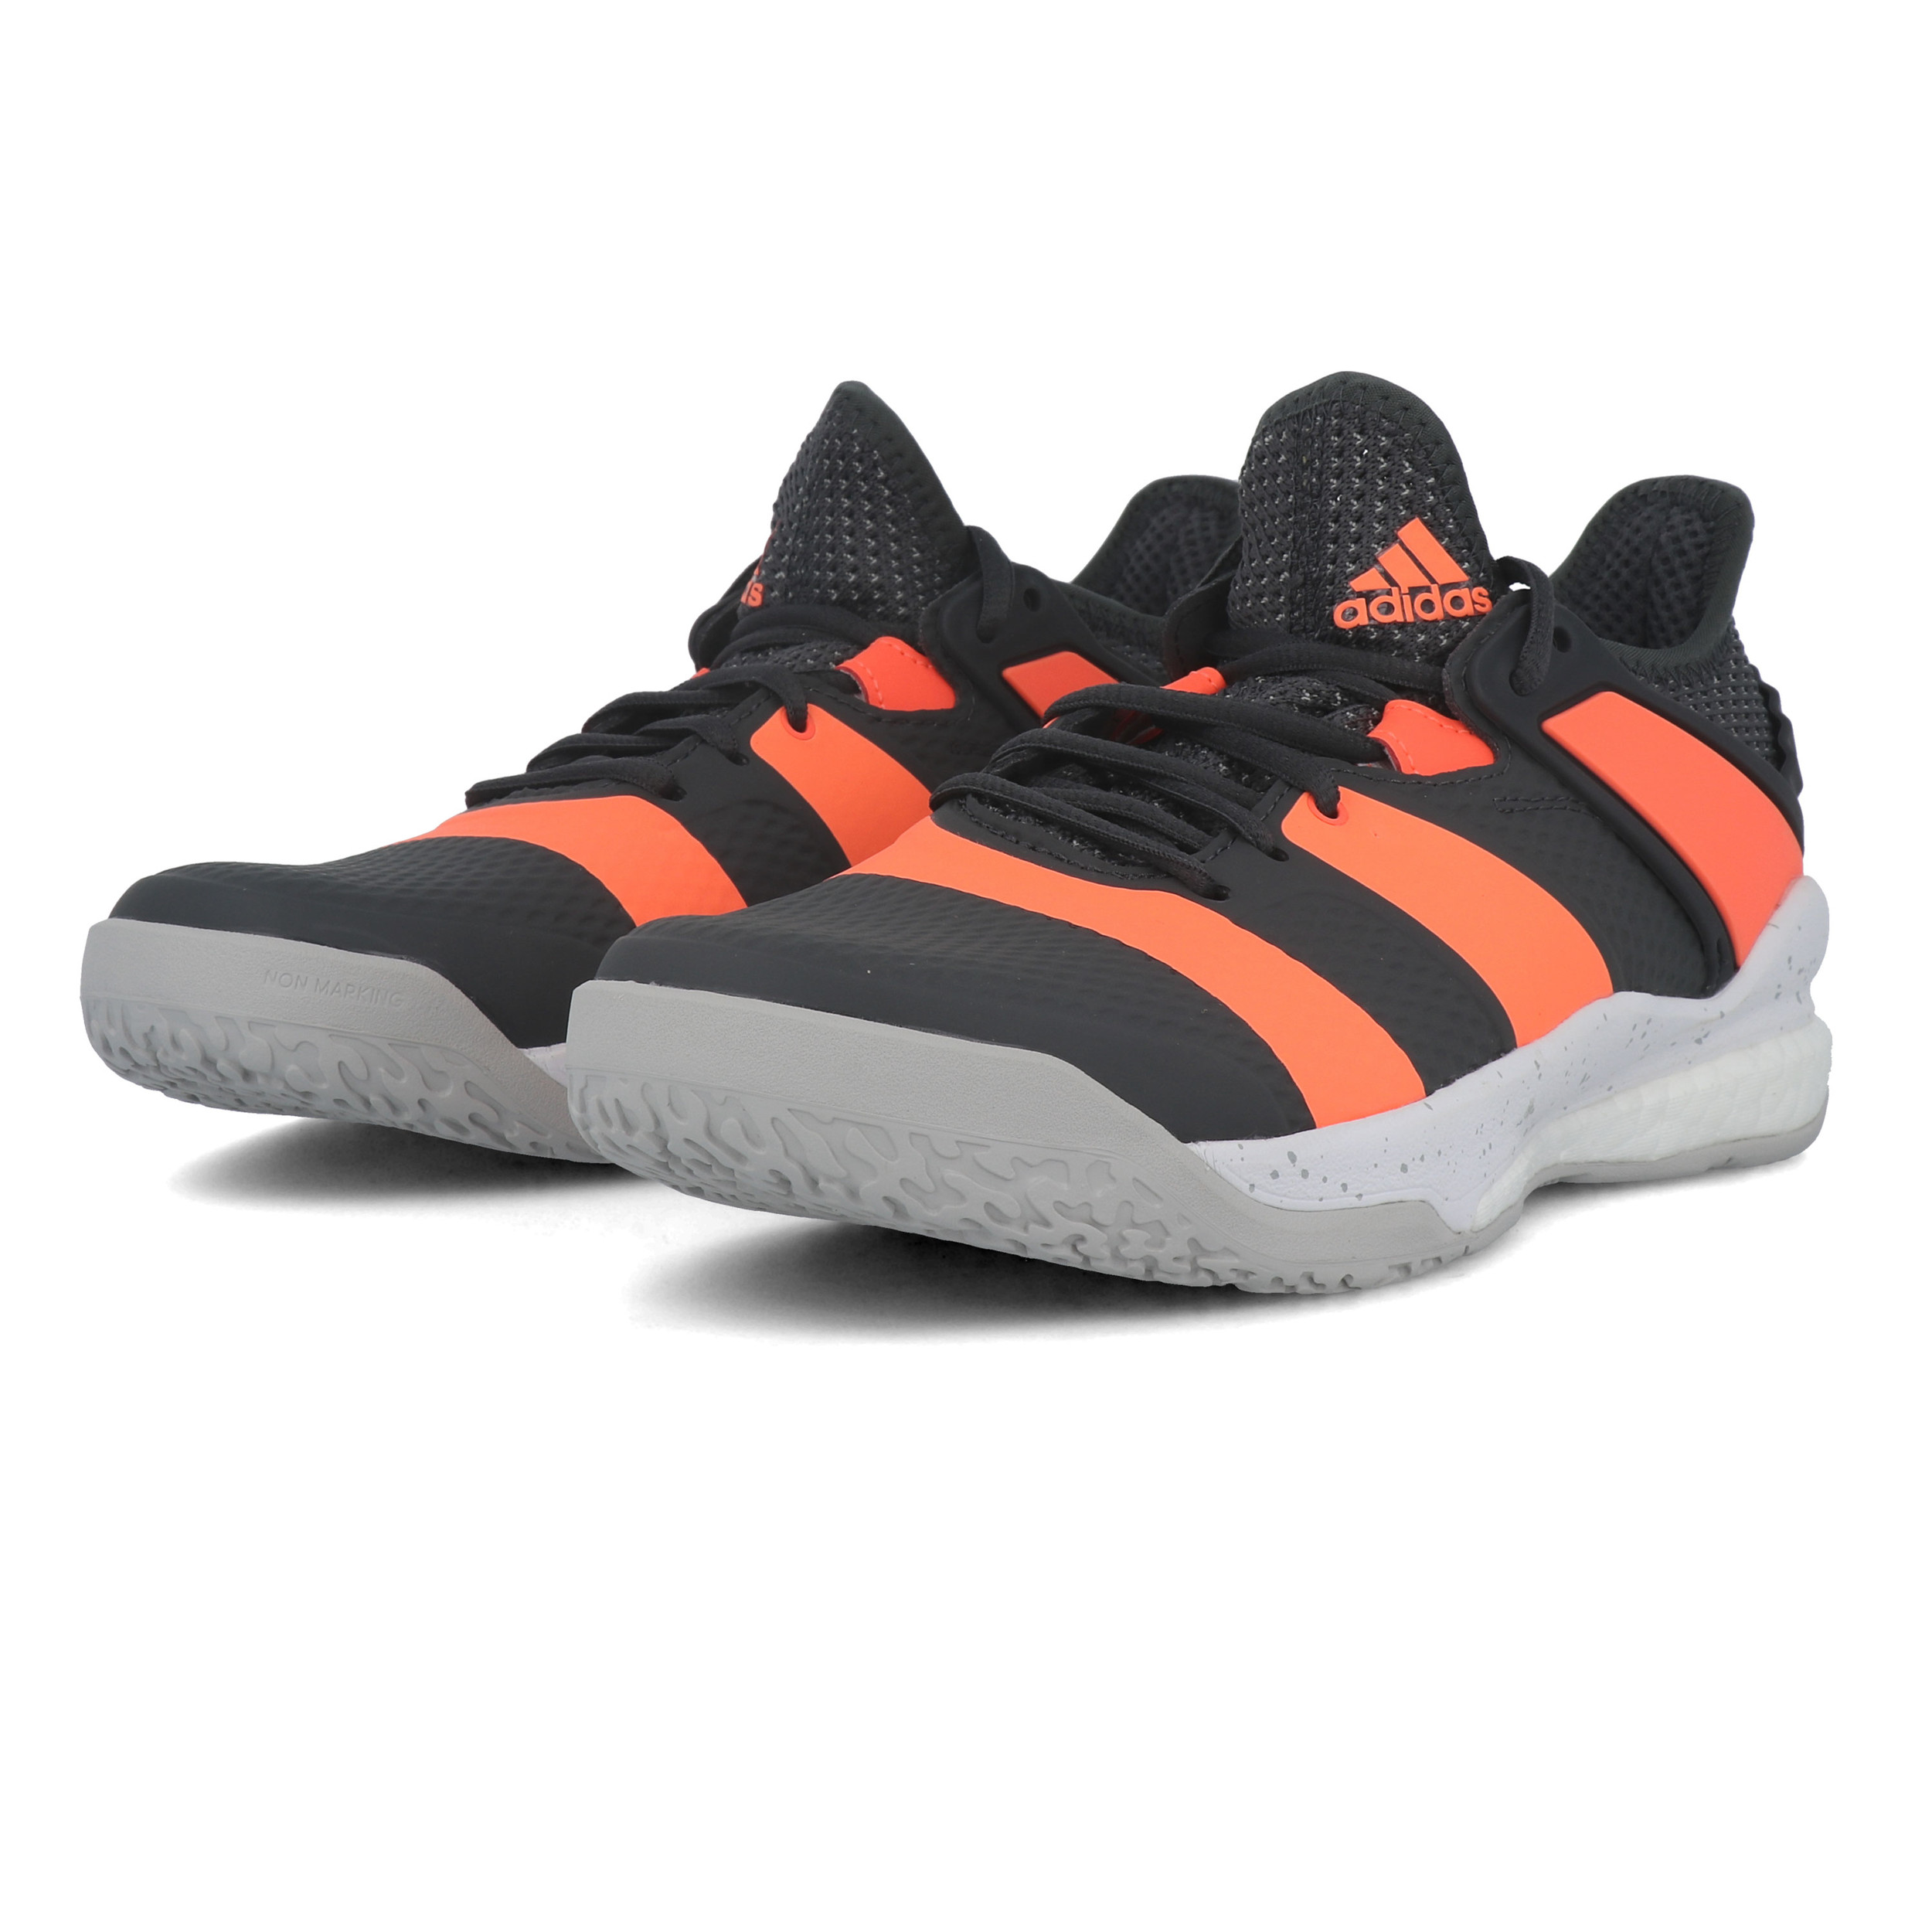 adidas Stabil X Indoor Court Shoes SS20